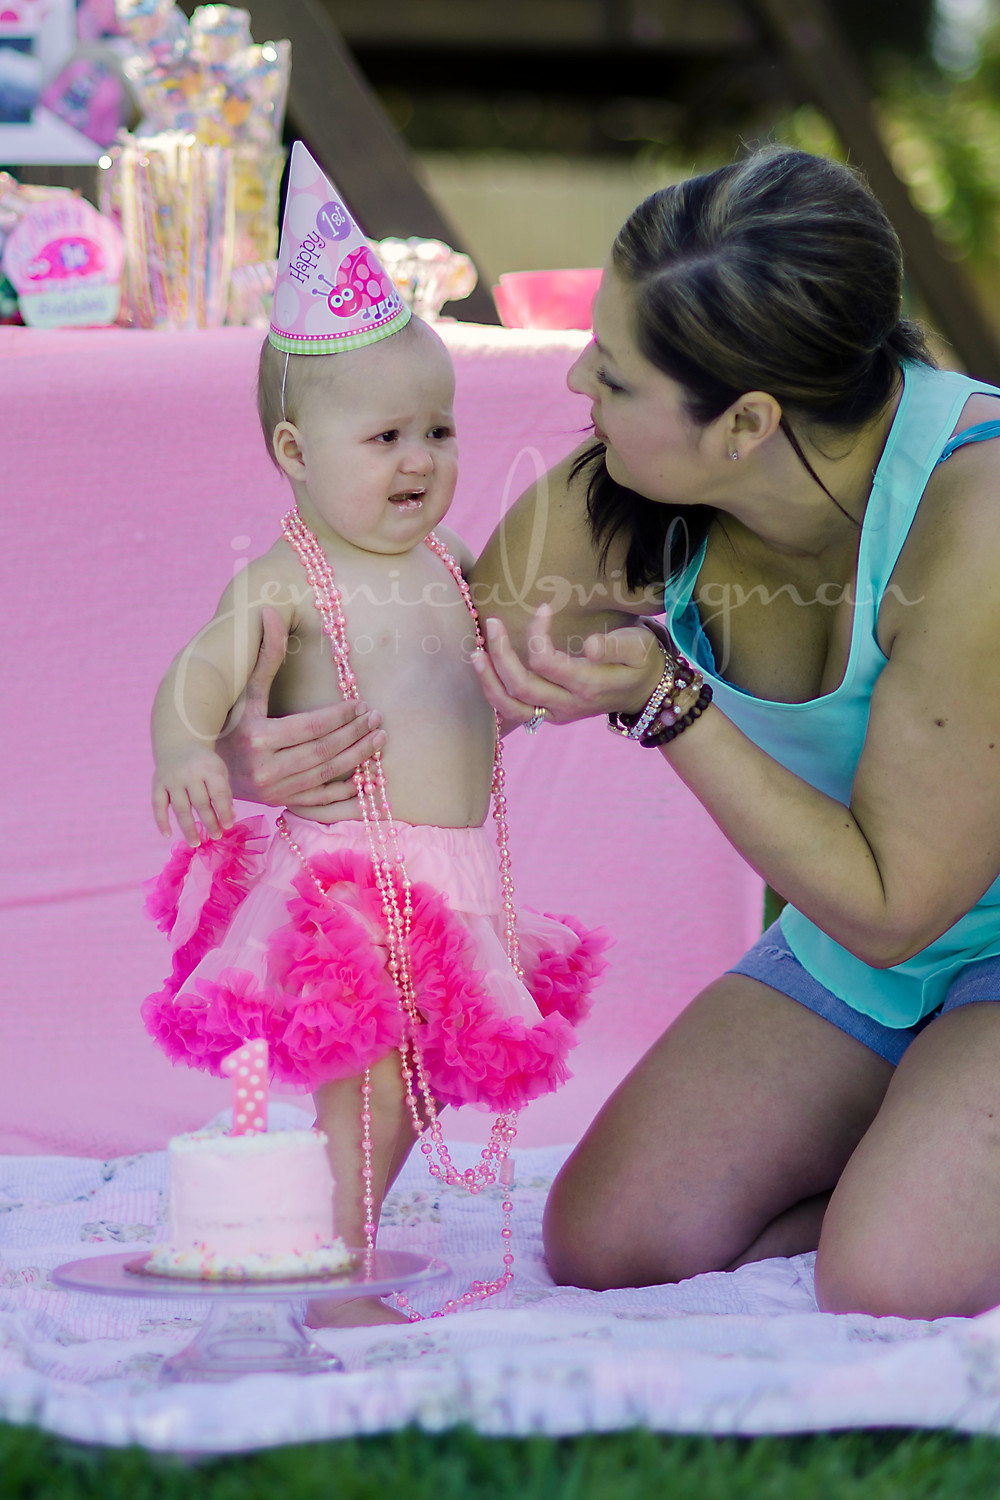 Baby J turns 1 | Cake Smash Birthday Party | Conway, AR Baby Photographer